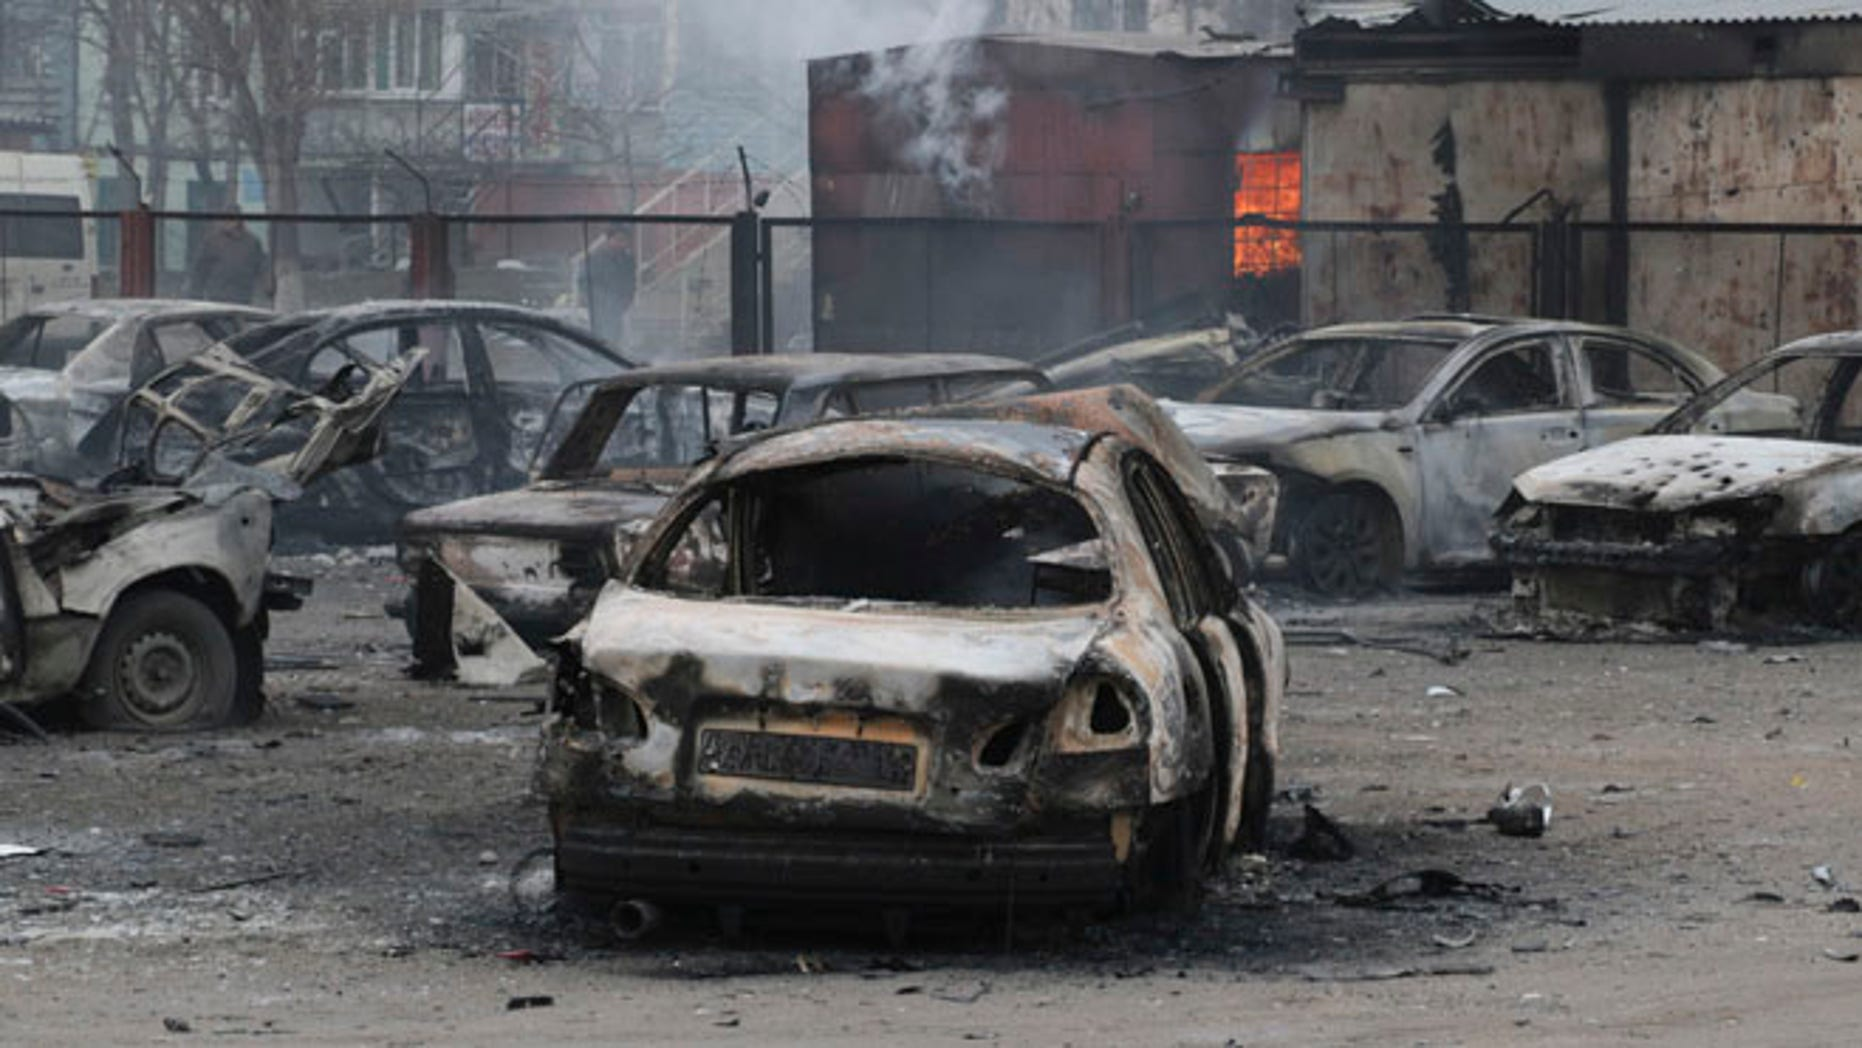 Jan. 24, 2015: Burned cars on a destroyed parking site in a residential area in Mariupol, Ukraine.